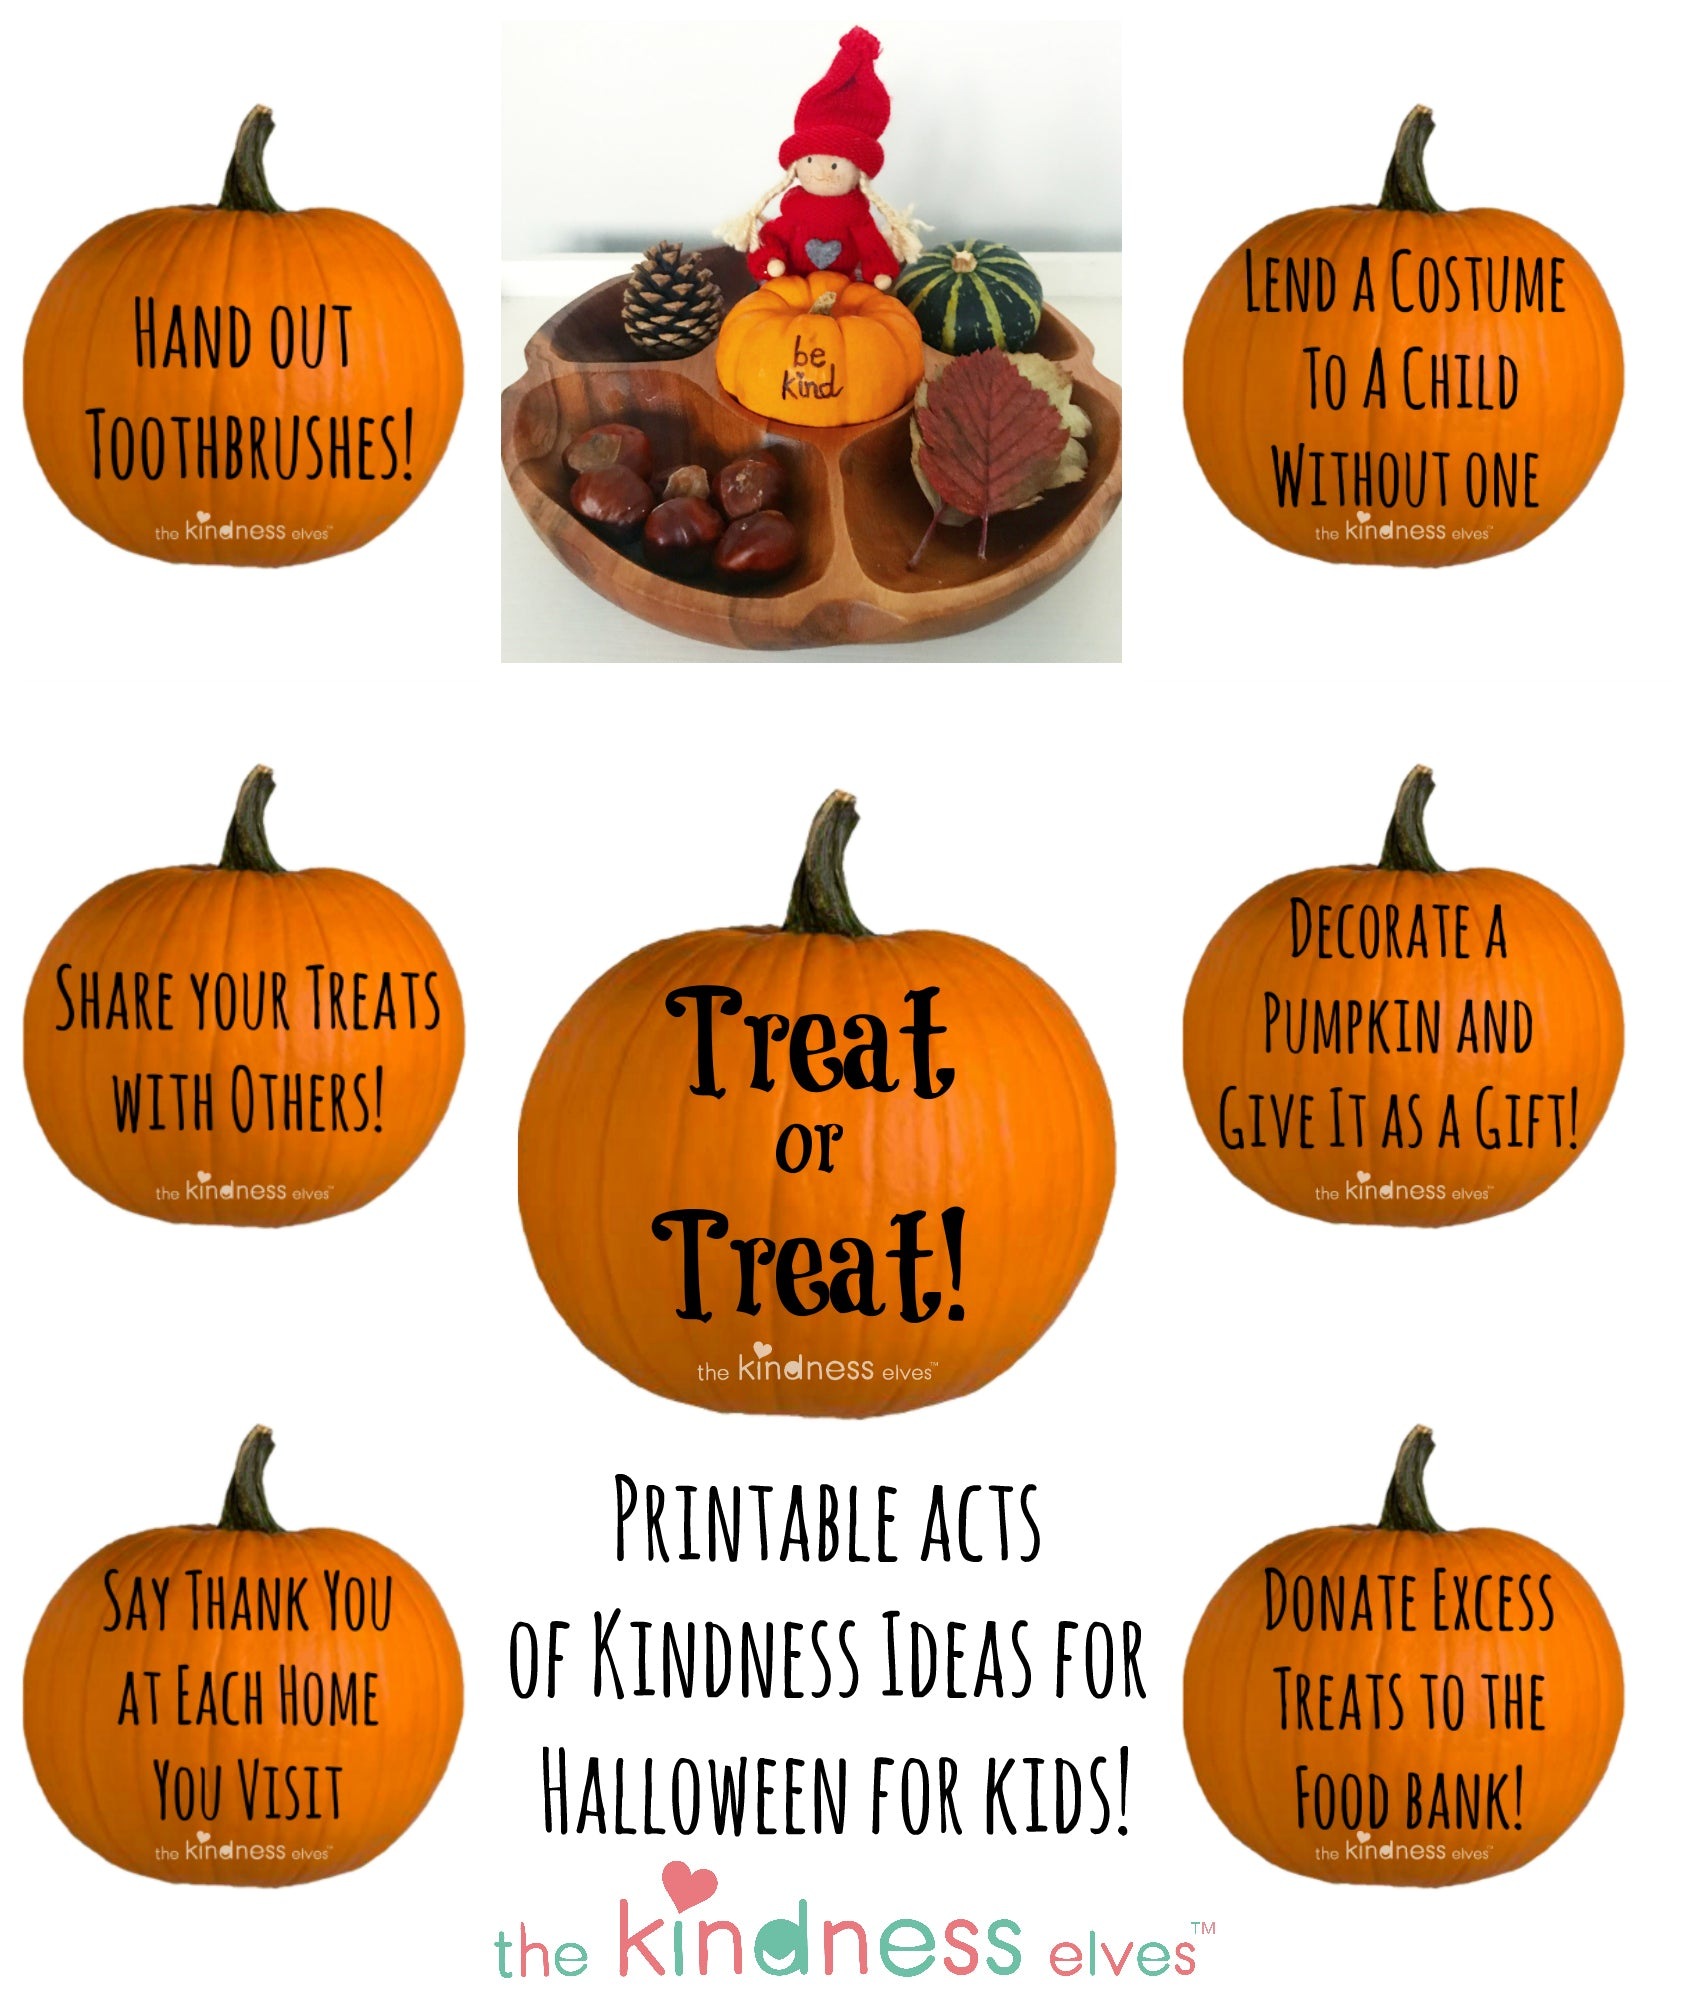 Treat or Treat Acts of Kindness